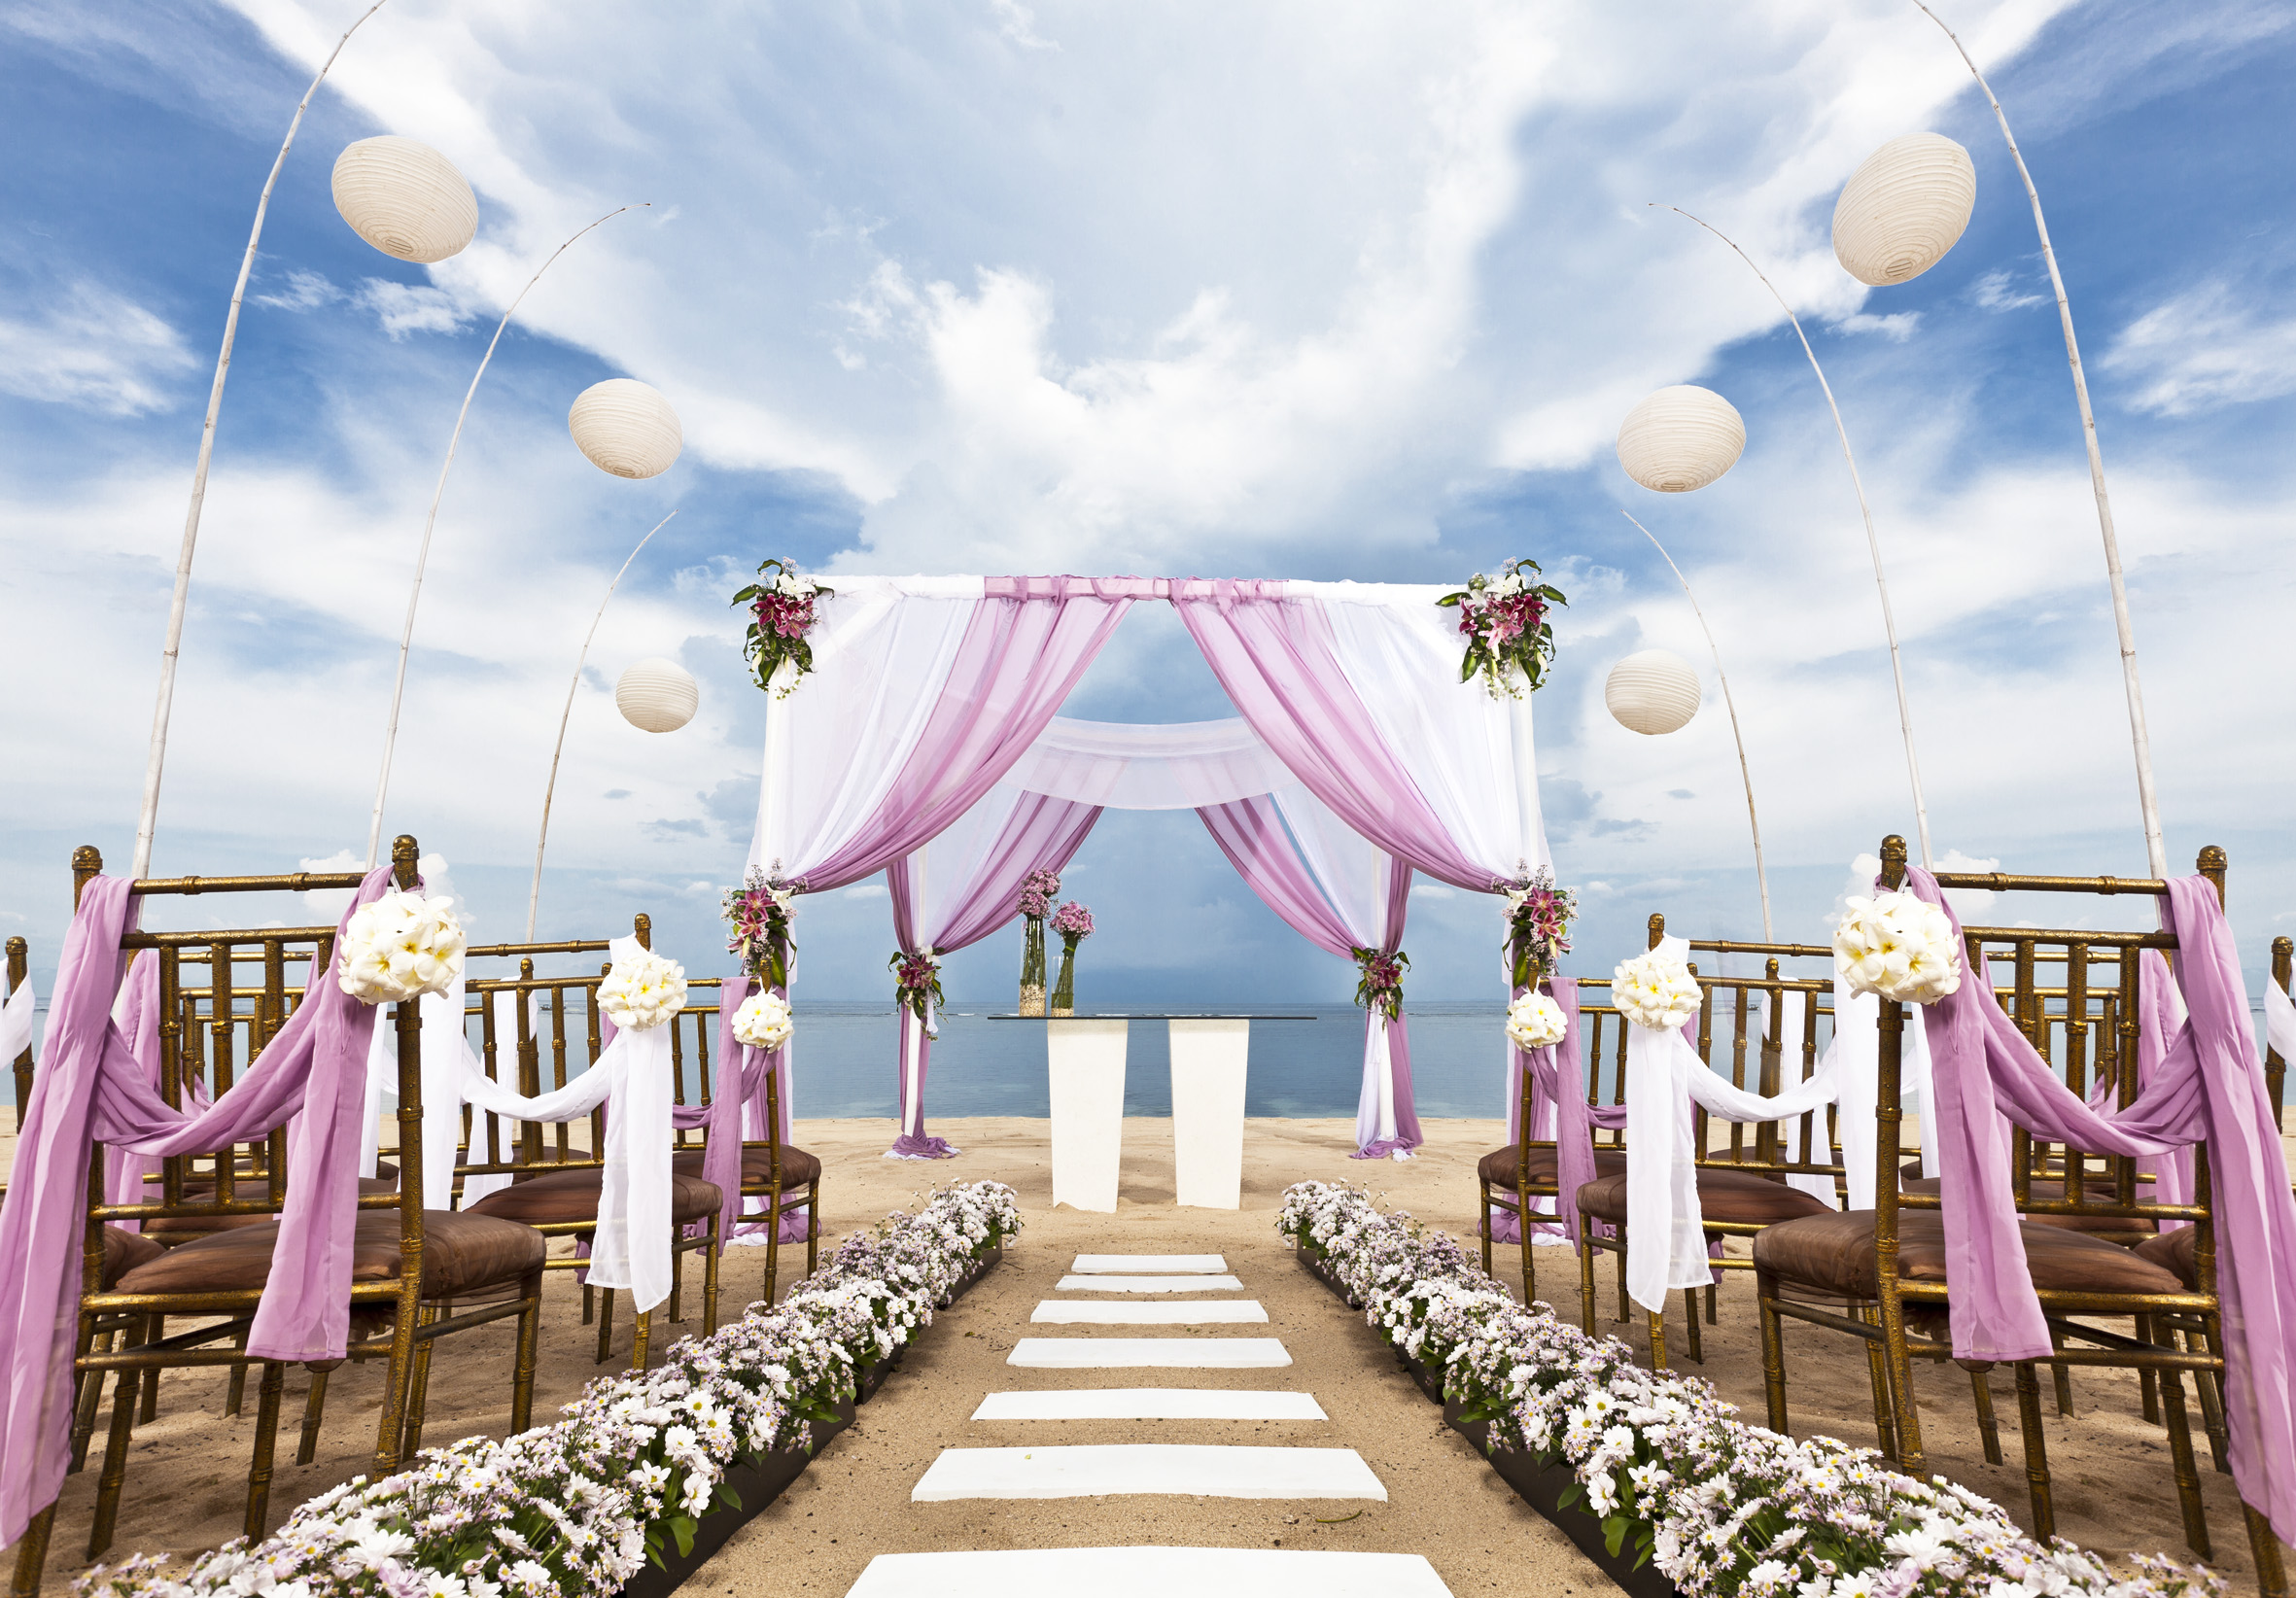 New wedding outdoor decoration wedding 15 best ceremony images on pinterest new wedding outdoor decoration junglespirit Gallery